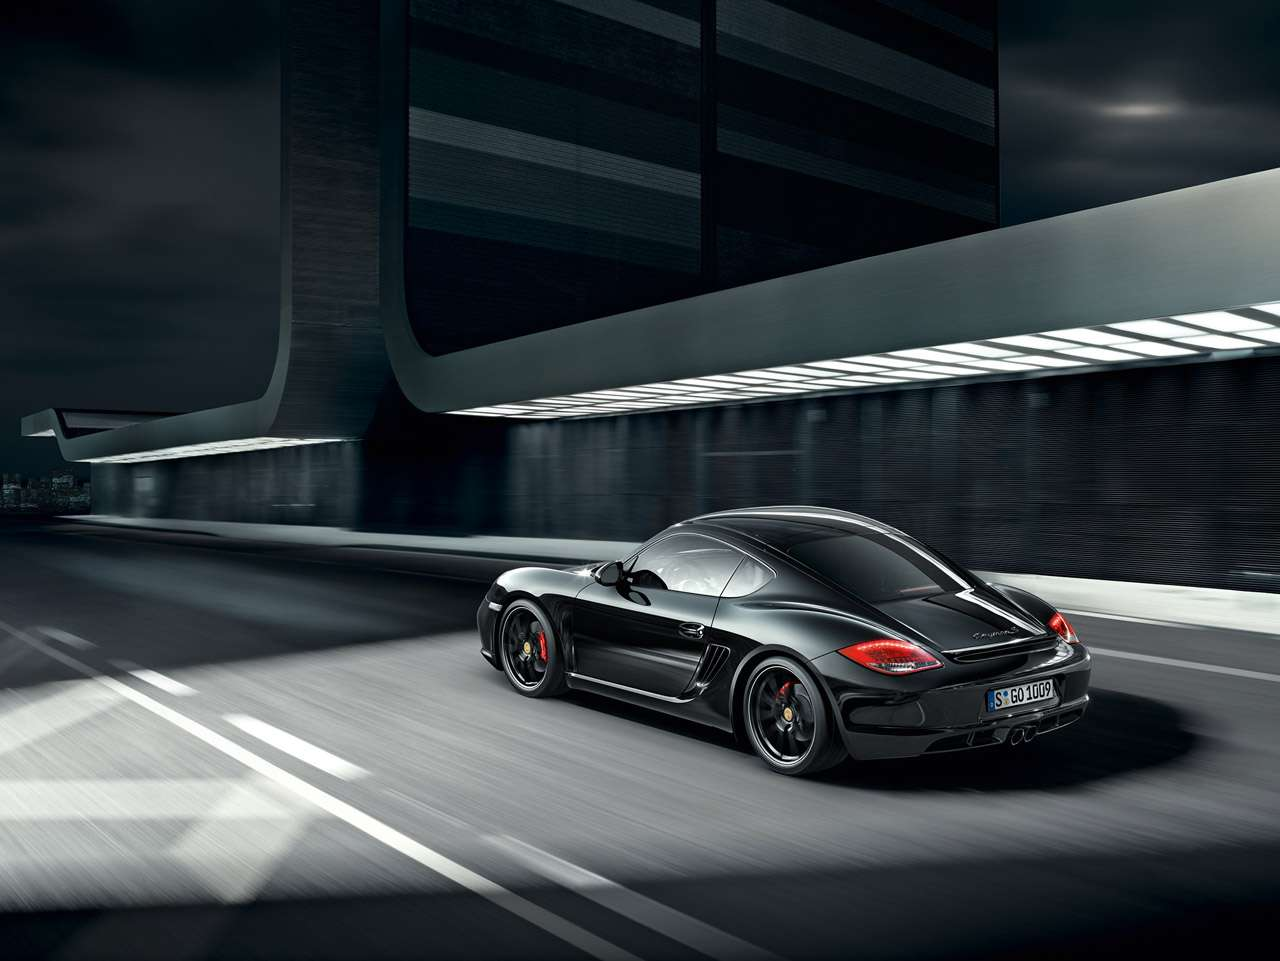 Porsche Cayman S Black Edition maj 2011